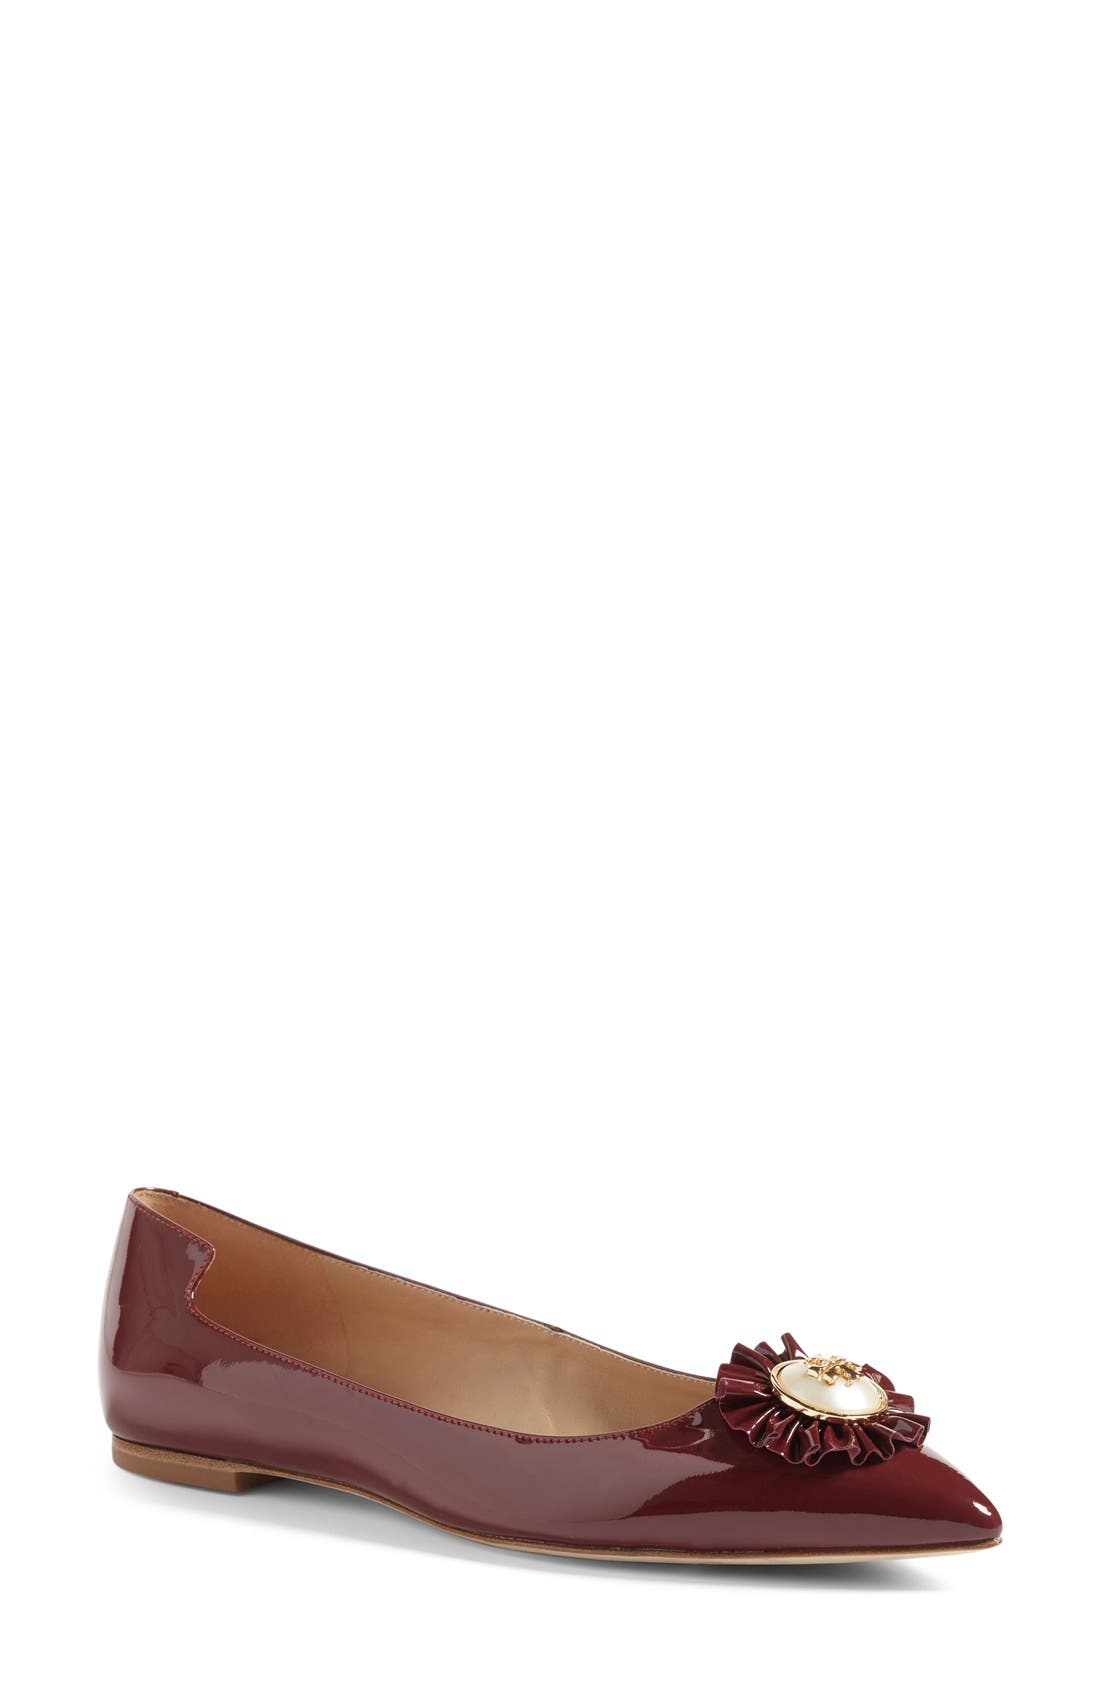 Alternate Image 1 Selected - Tory Burch Melody Pointy Toe Flat (Women)